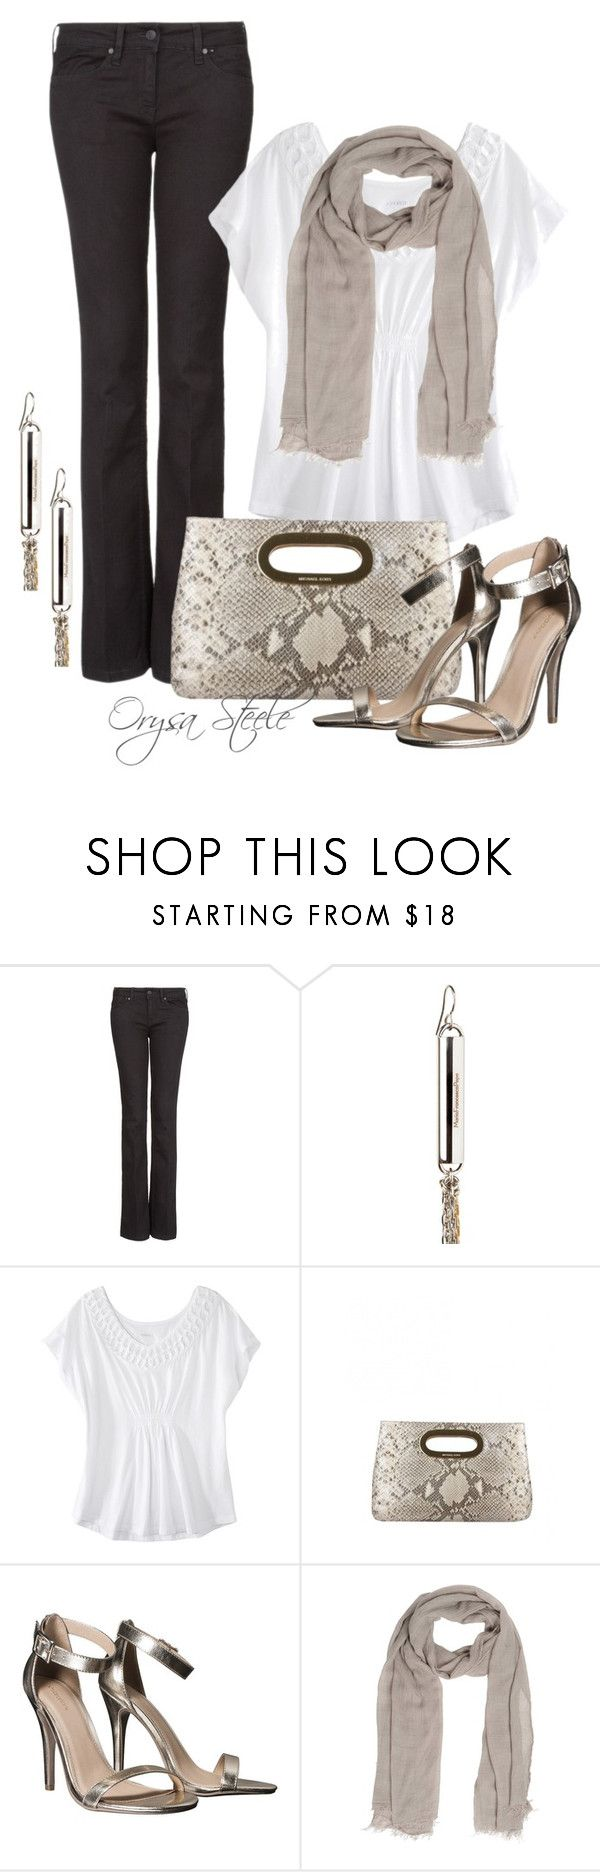 """""""Dinner Date"""" by orysa ❤ liked on Polyvore featuring MANGO, Maria Francesca Pepe, Merona, Michael Kors, Xhilaration and SCERVINO STREET"""